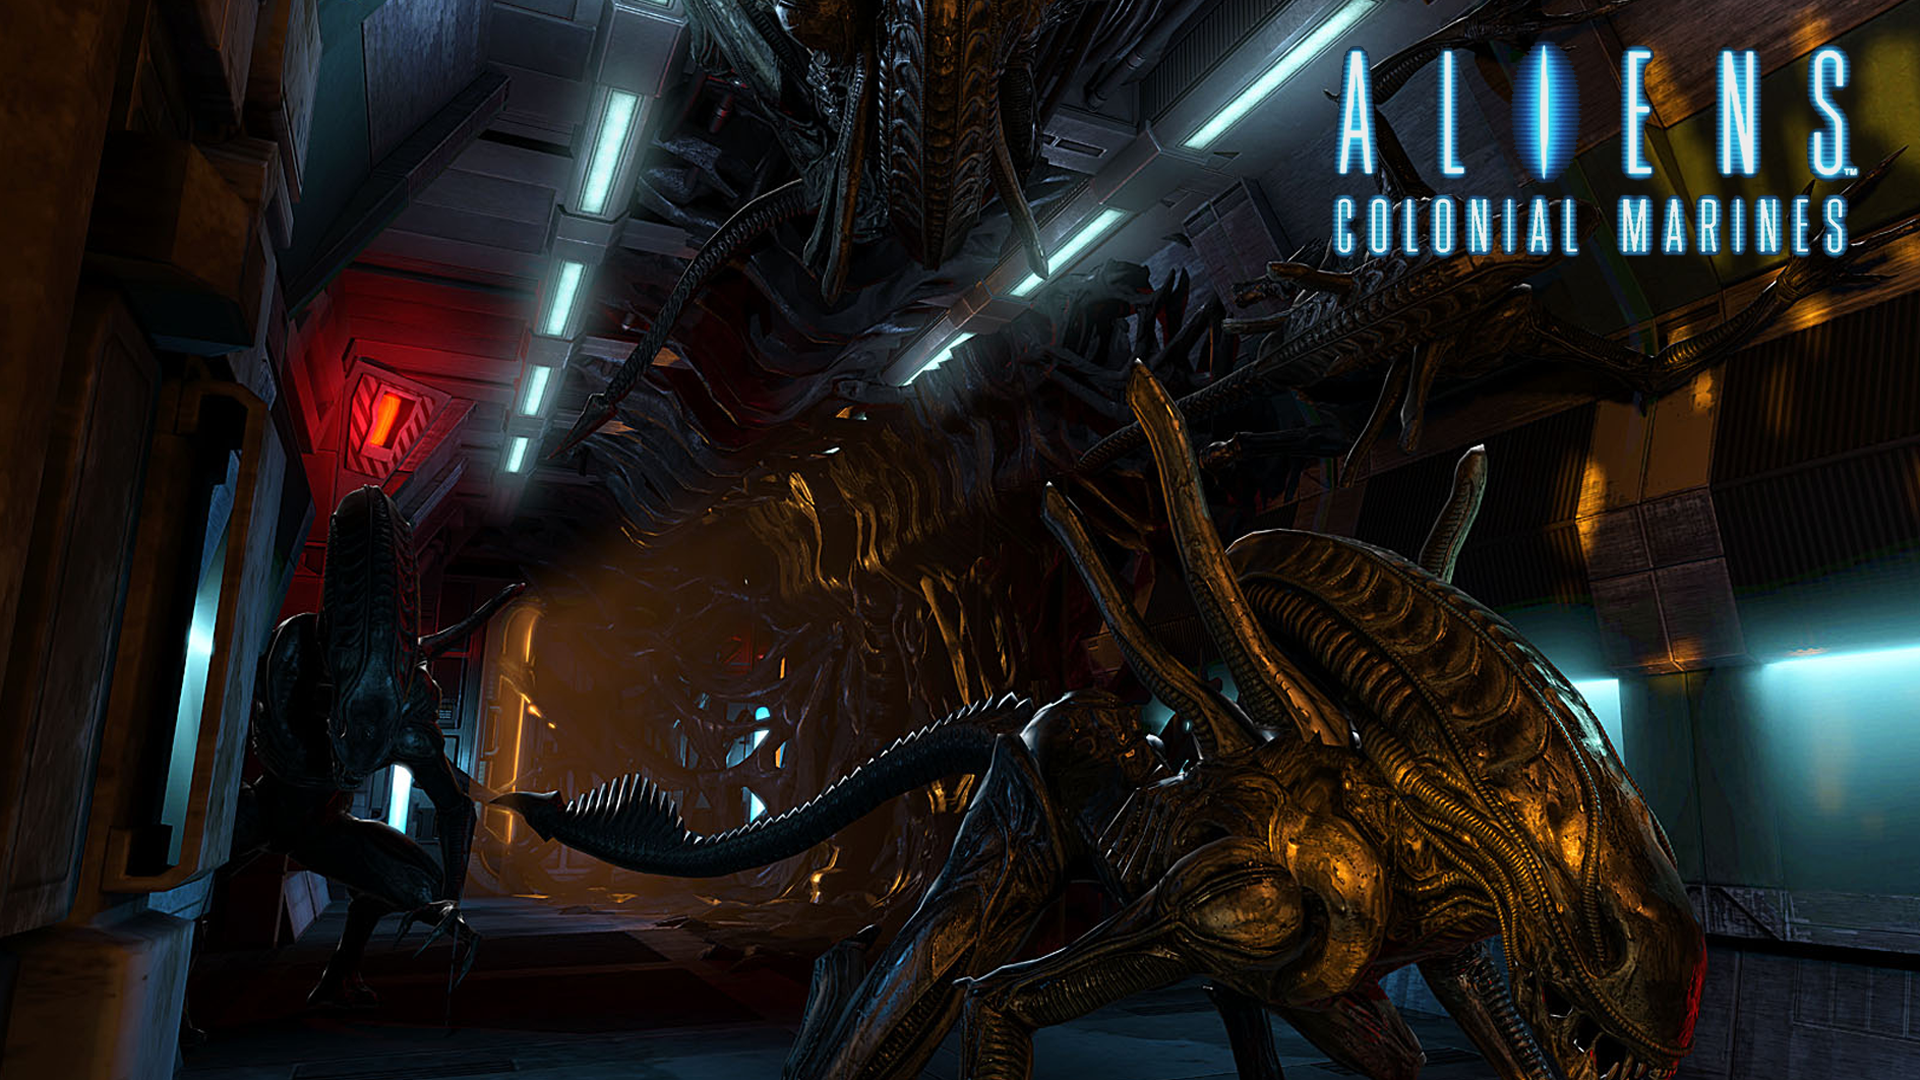 aliens colonial marines hd wallpaper background image